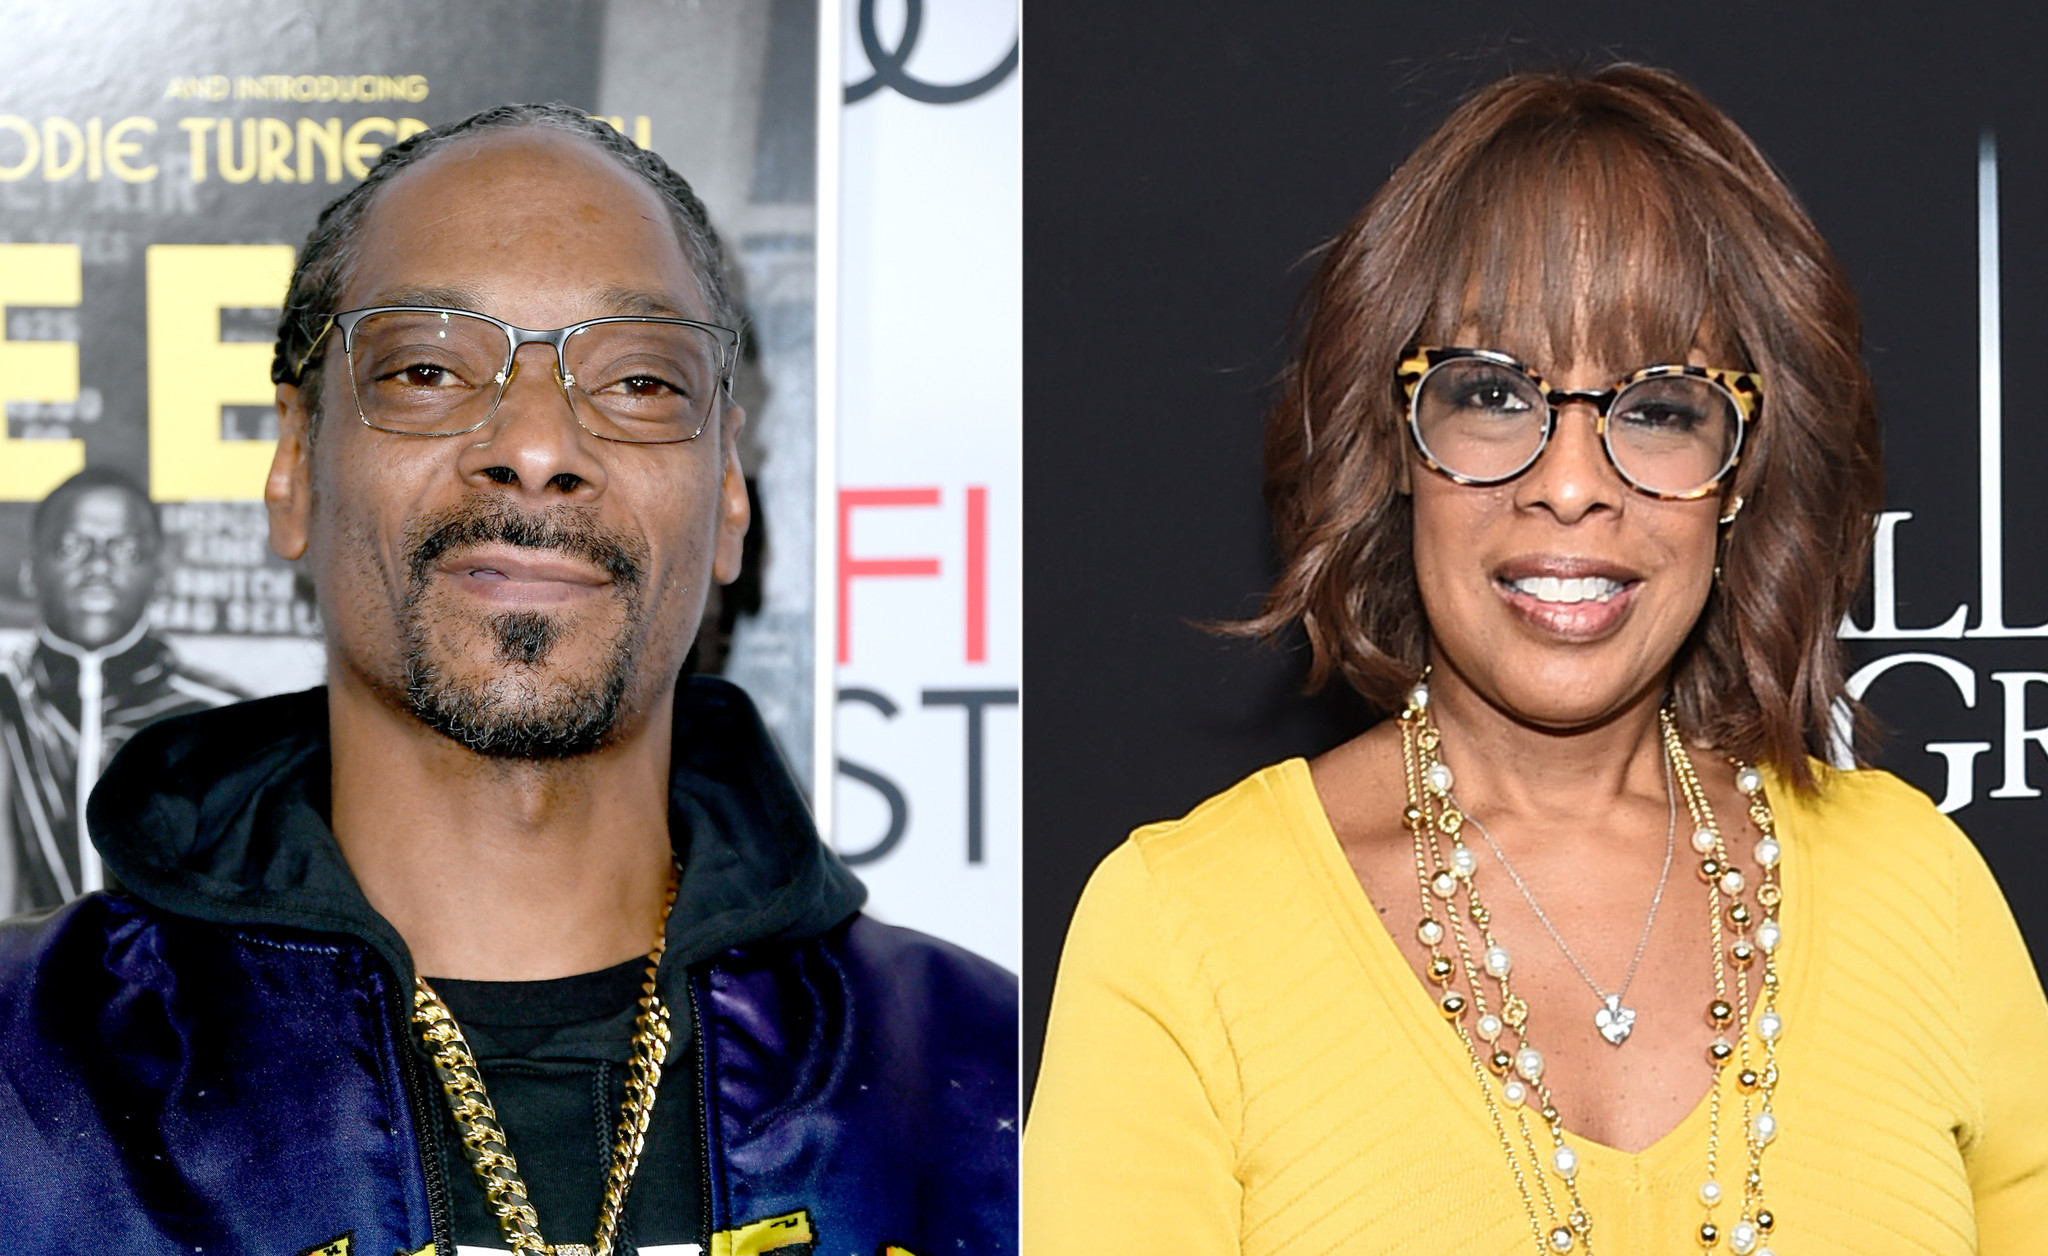 Gayle King forgives Snoop Dogg, says she understands 'raw emotions' behind Kobe Bryant rant